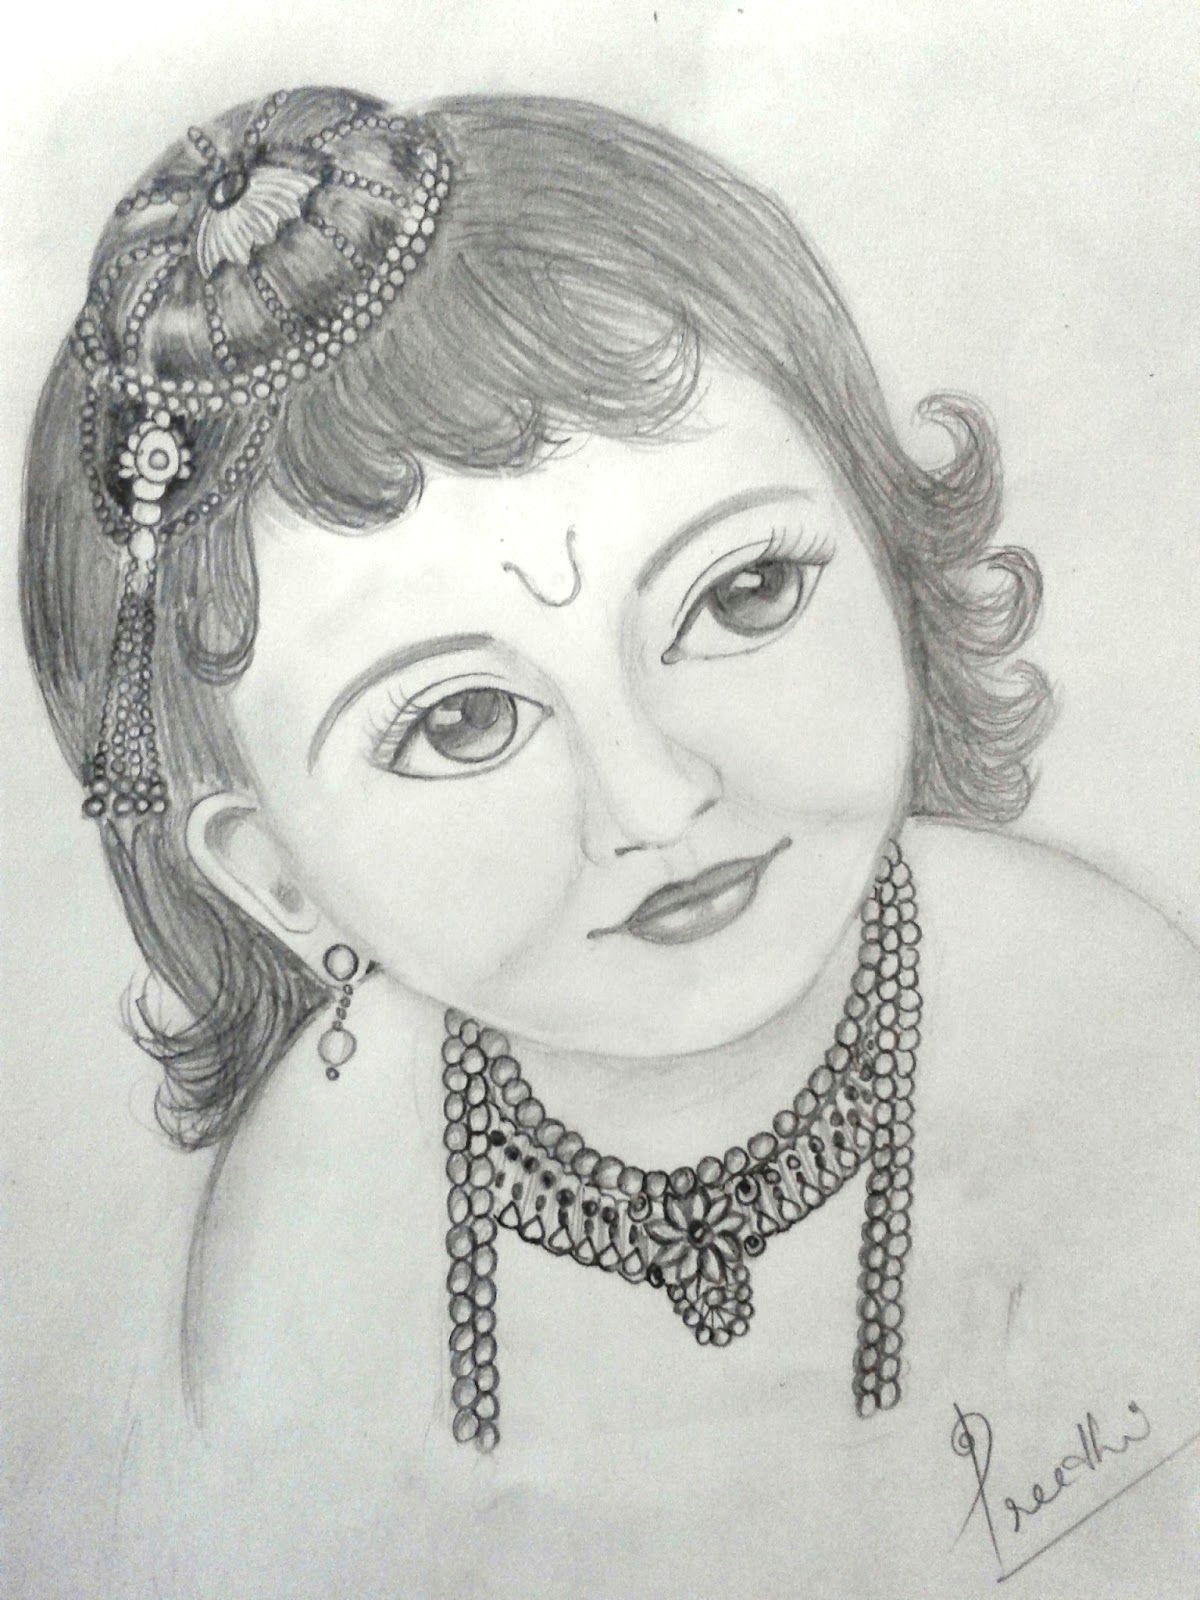 easy pencil drawings of faces a pencil sketch of little krishna pinterest of easy pencil drawings